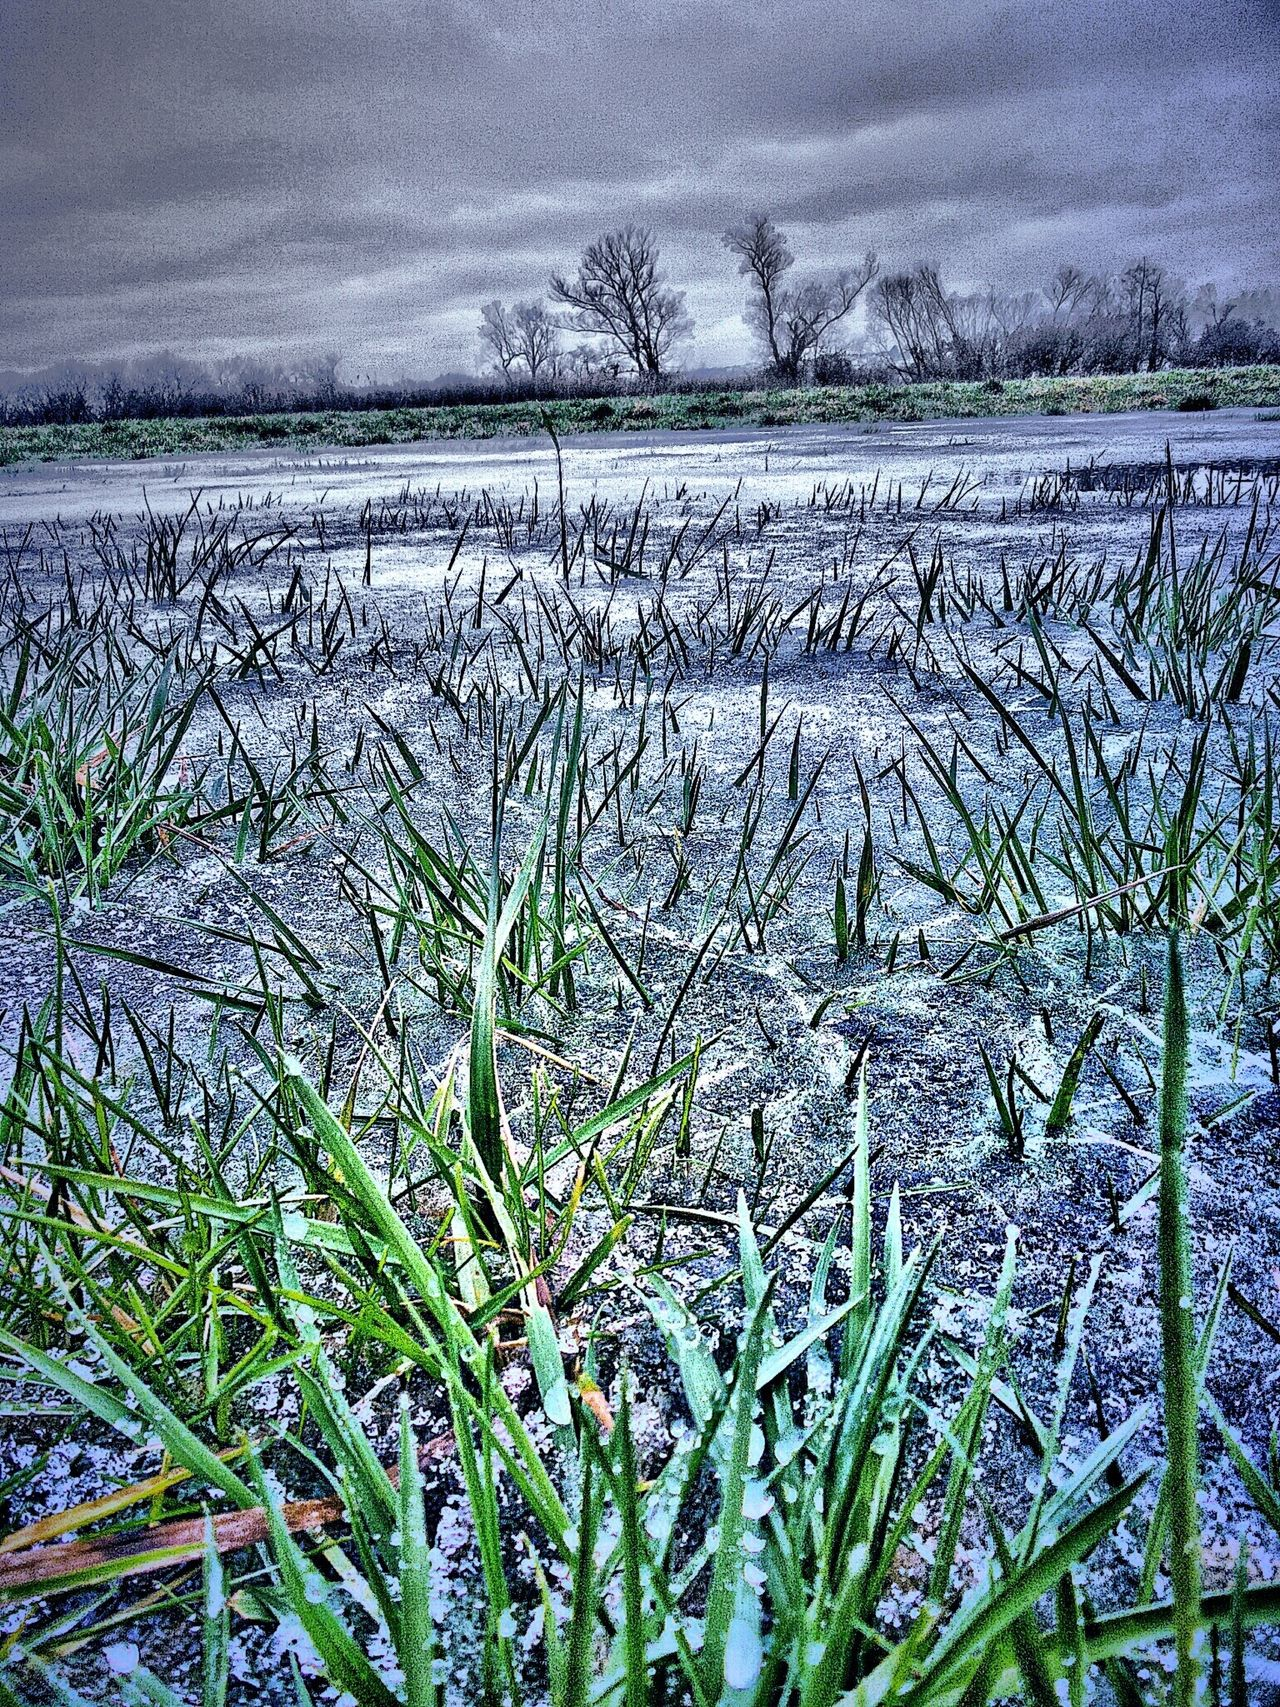 Frost Cold Freeze Early Winter icycold Green Grass Growing Through Ice Growth Agriculture Nature Field Rural Scene Beauty In Nature Outdoors Close-up Fragility No People Kinzig Auen Langenselbold Germany🇩🇪